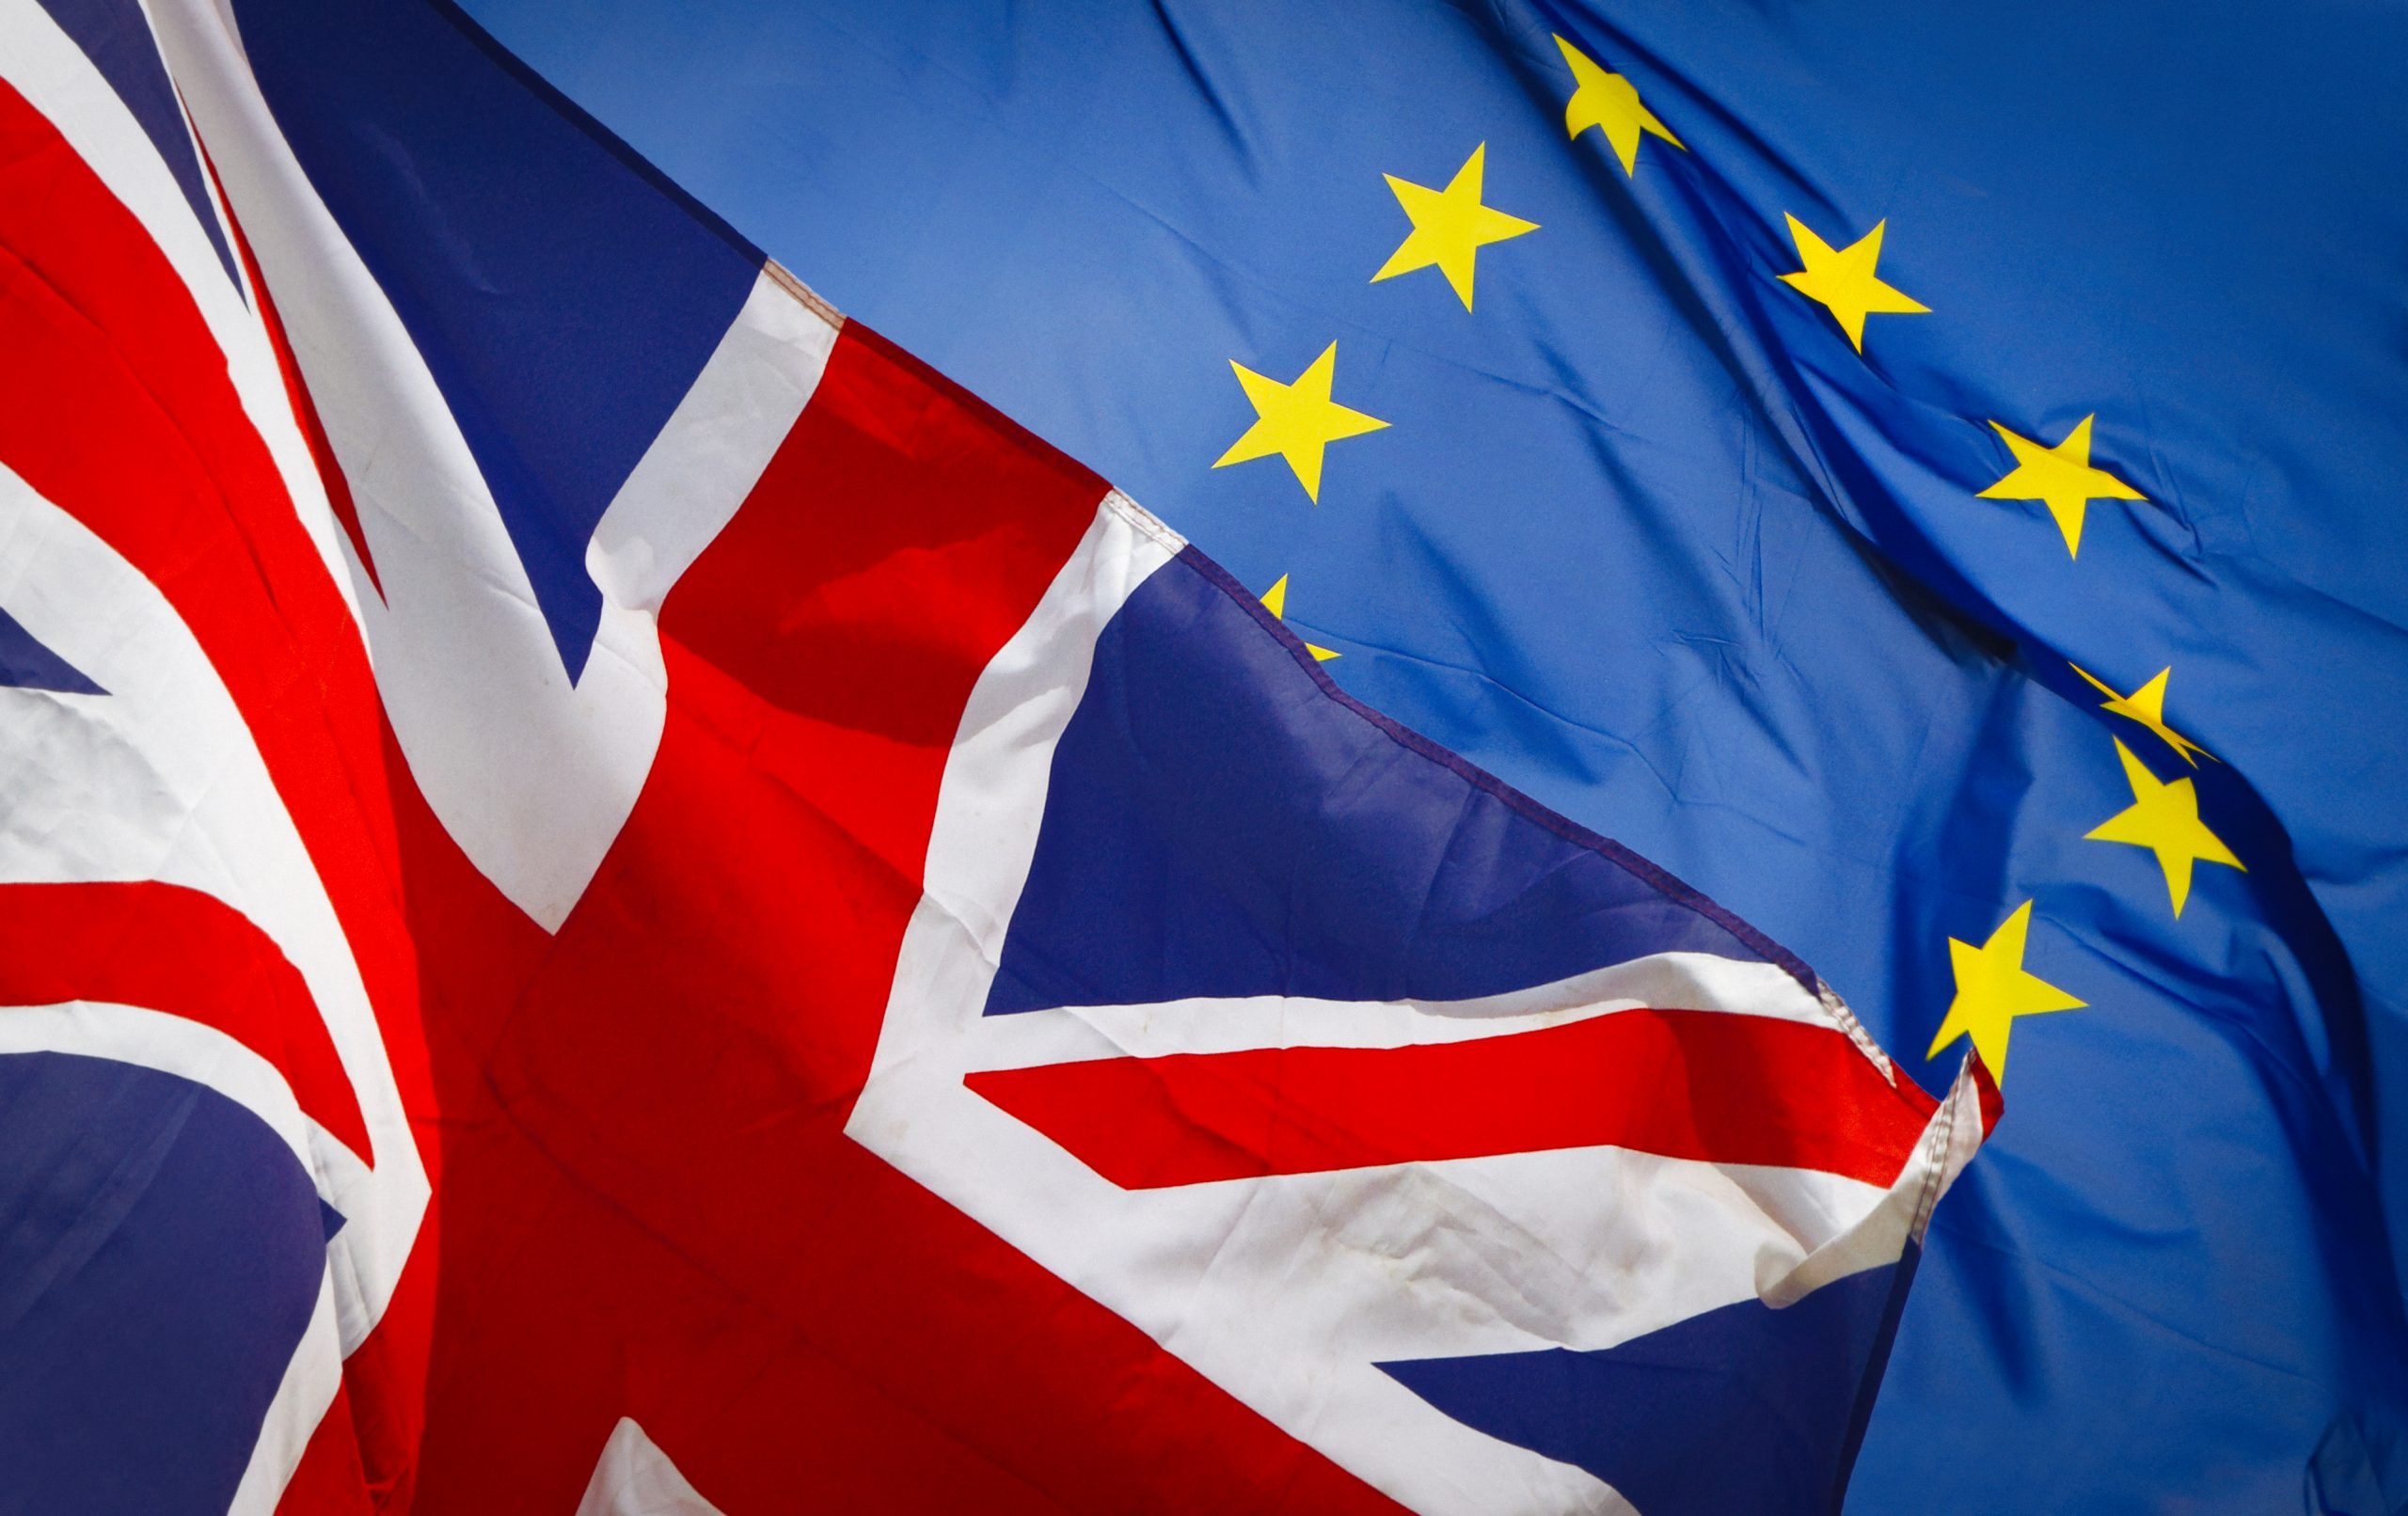 How Can Small Businesses Get Ready for Brexit?